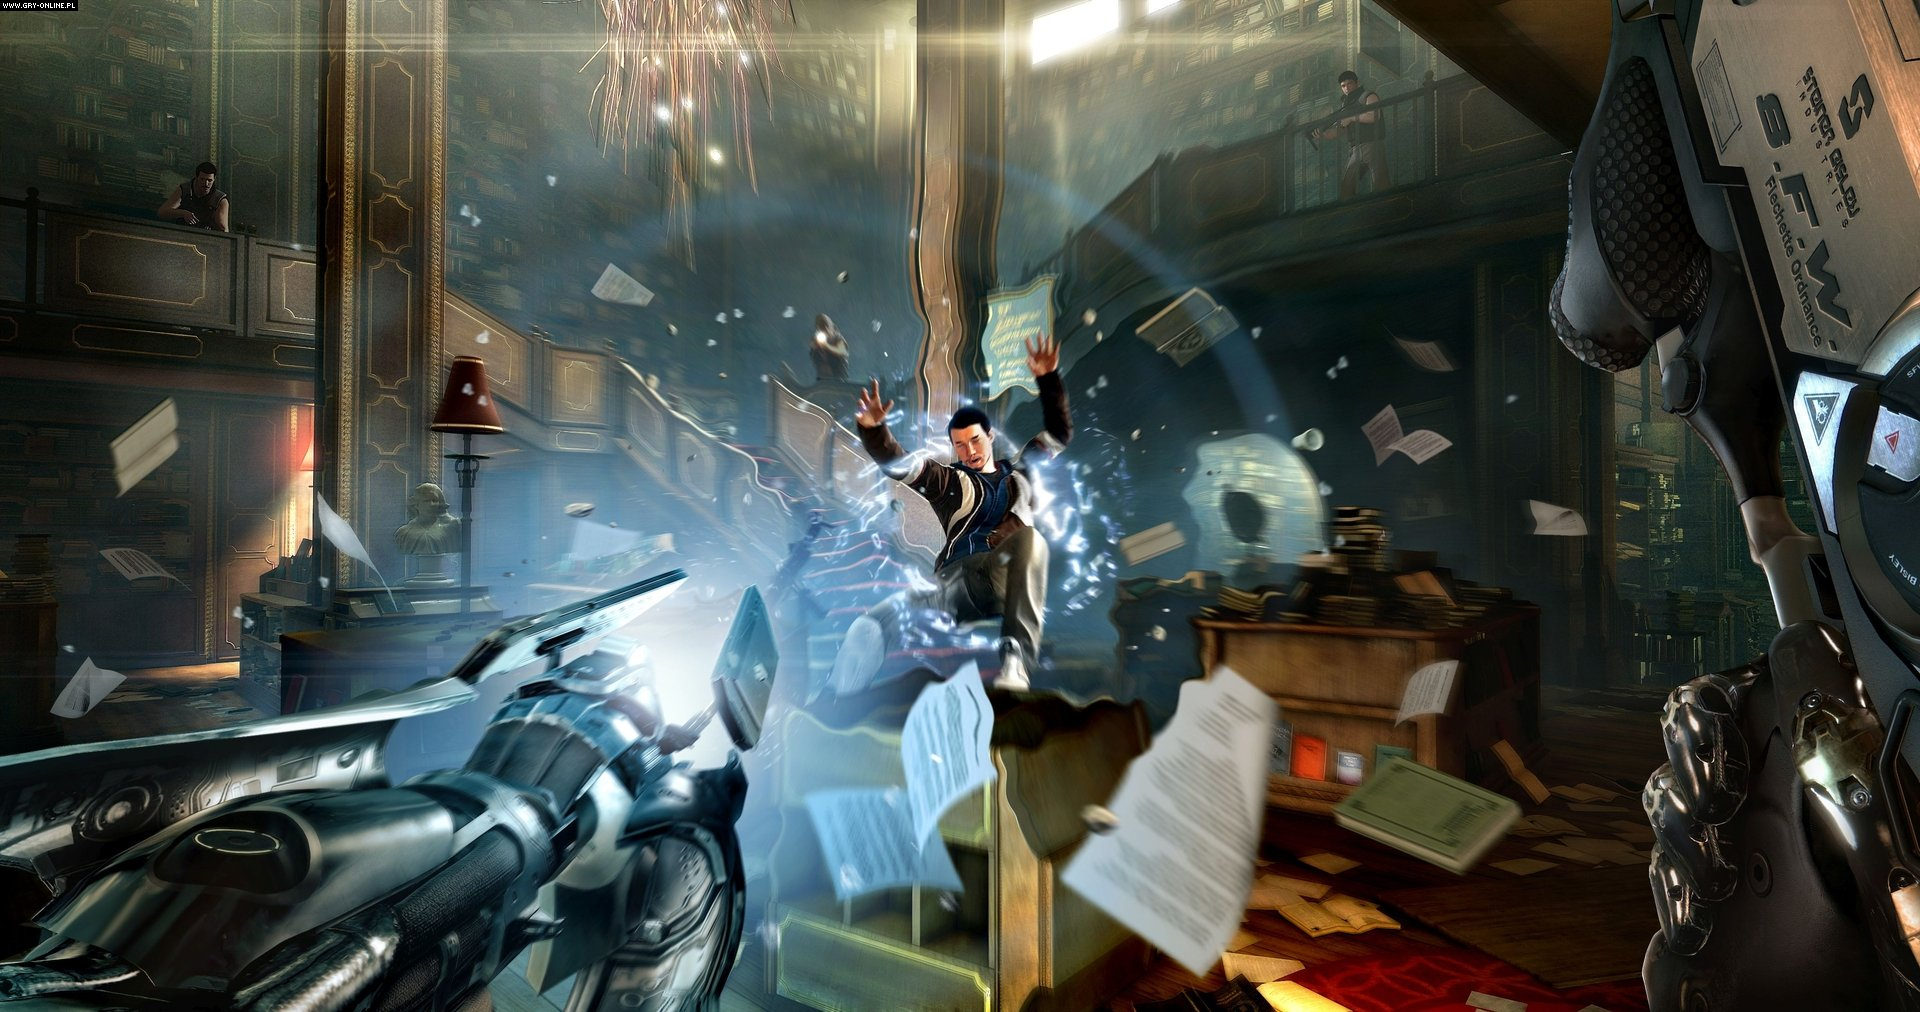 Deus Ex: Mankind Divided PC, PS4, XONE Games Image 1/28, Eidos Montreal, Square-Enix / Eidos